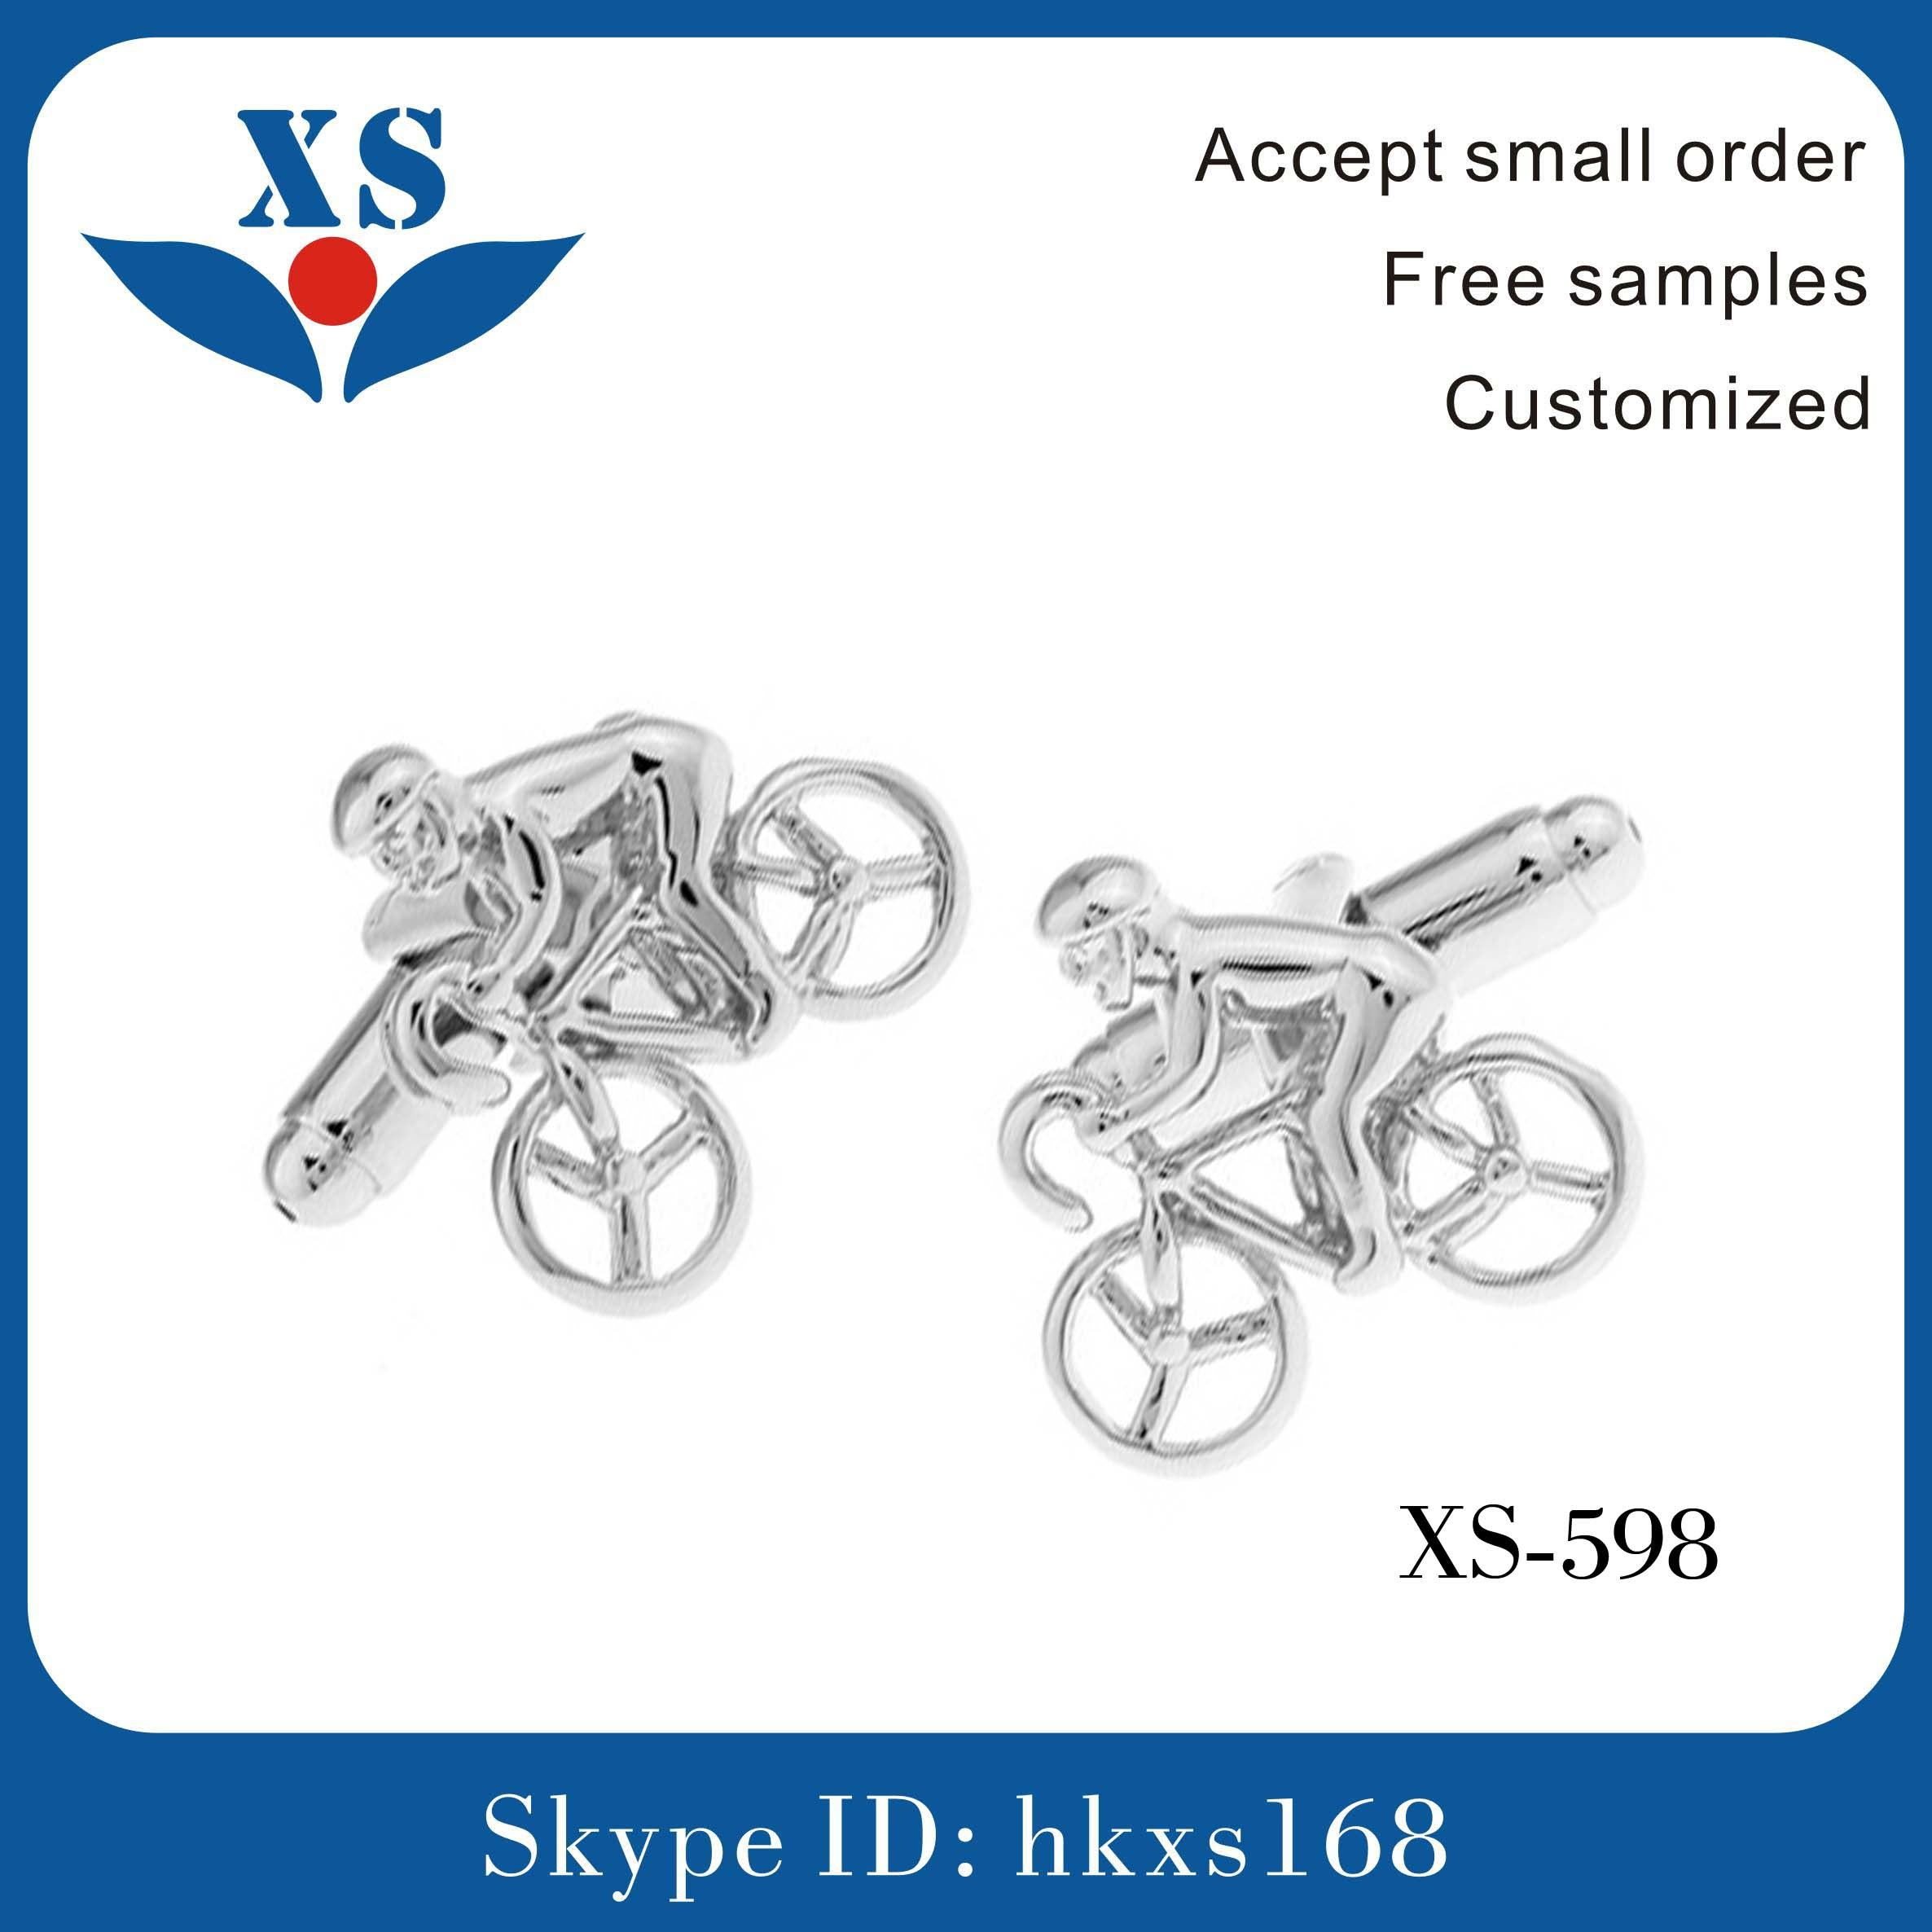 New Style Custom Metal Cufflink with Rope